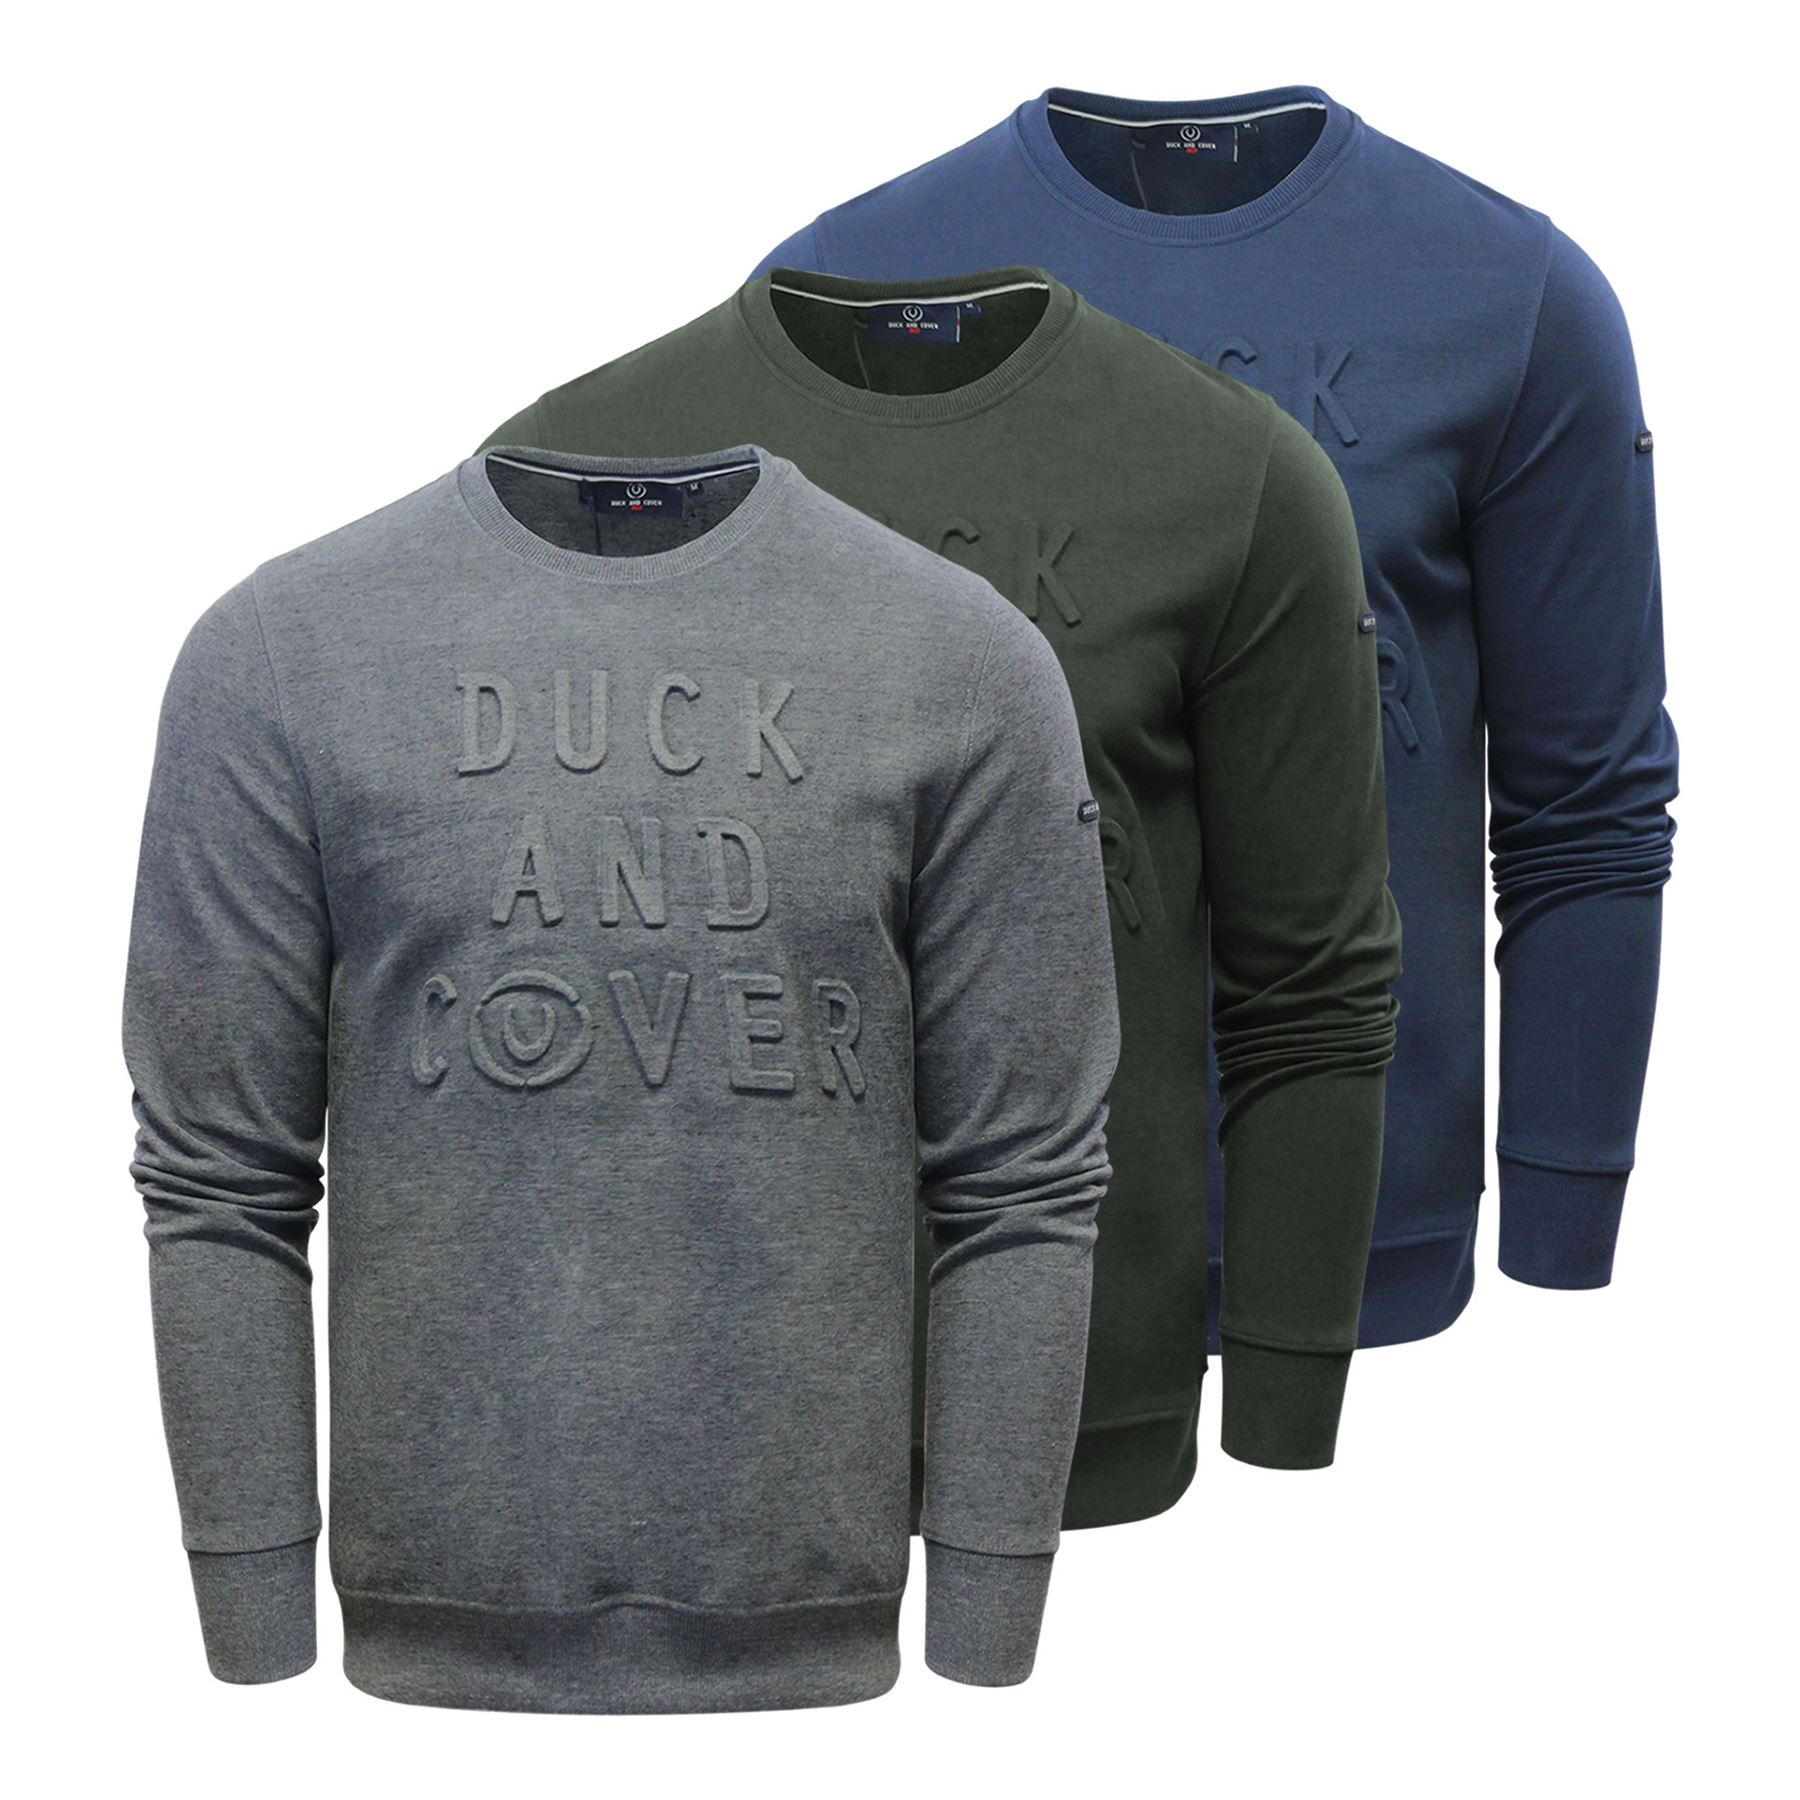 737c8e91e48f Duck   Cover Linden Mens Sweatshirt Embossed Graphic Pull Over Crew Neck  Sweater